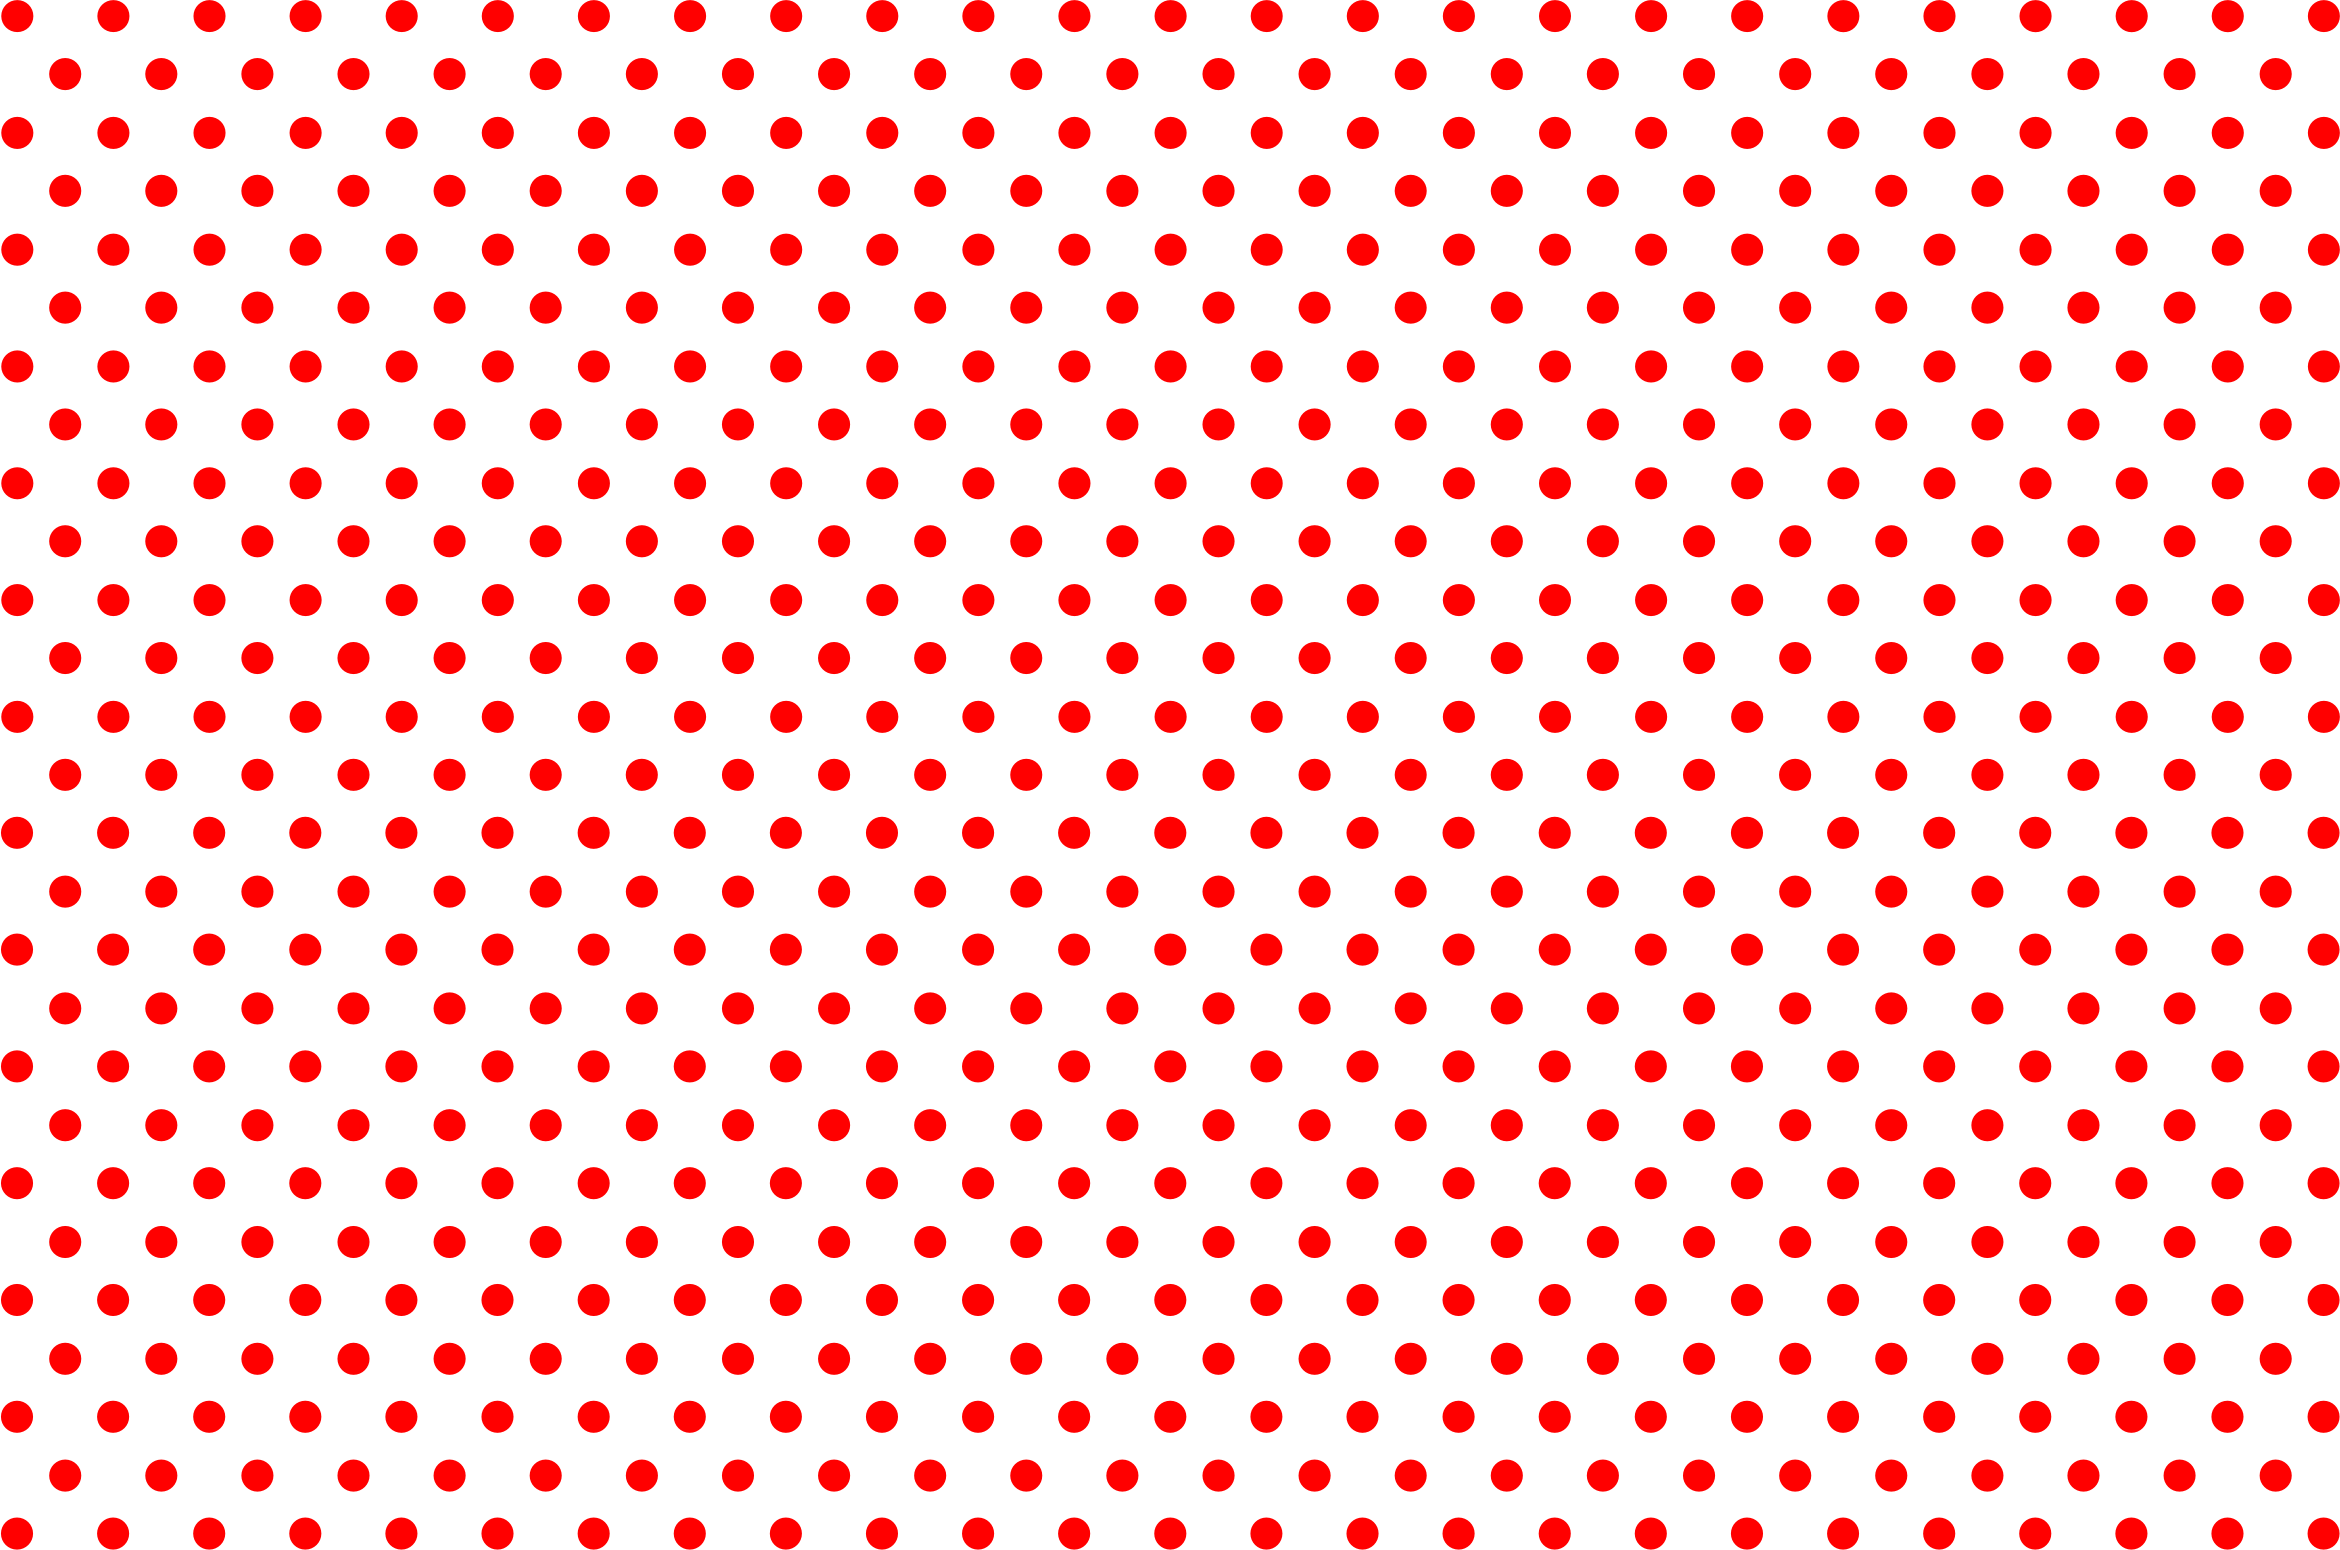 HQ Dots Wallpapers | File 220.75Kb